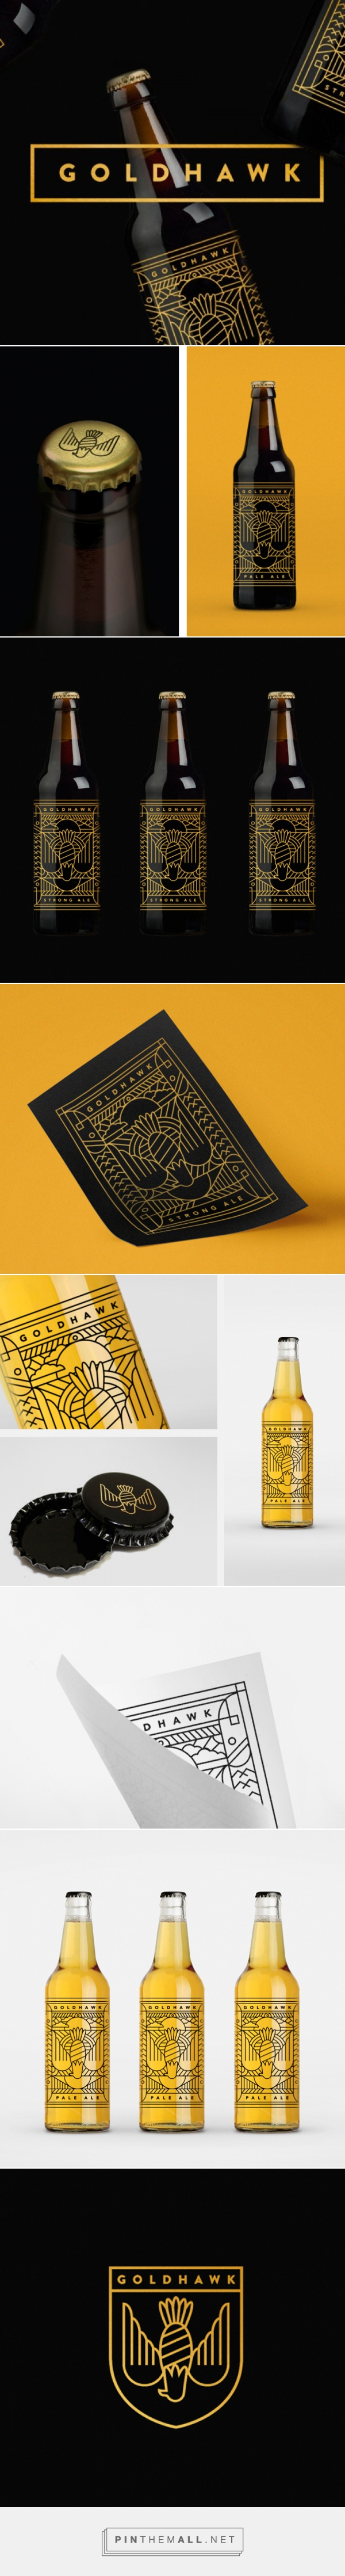 Goldhawk Craft Beer | Oh Beautiful Beer... - a grouped images picture - Pin Them All